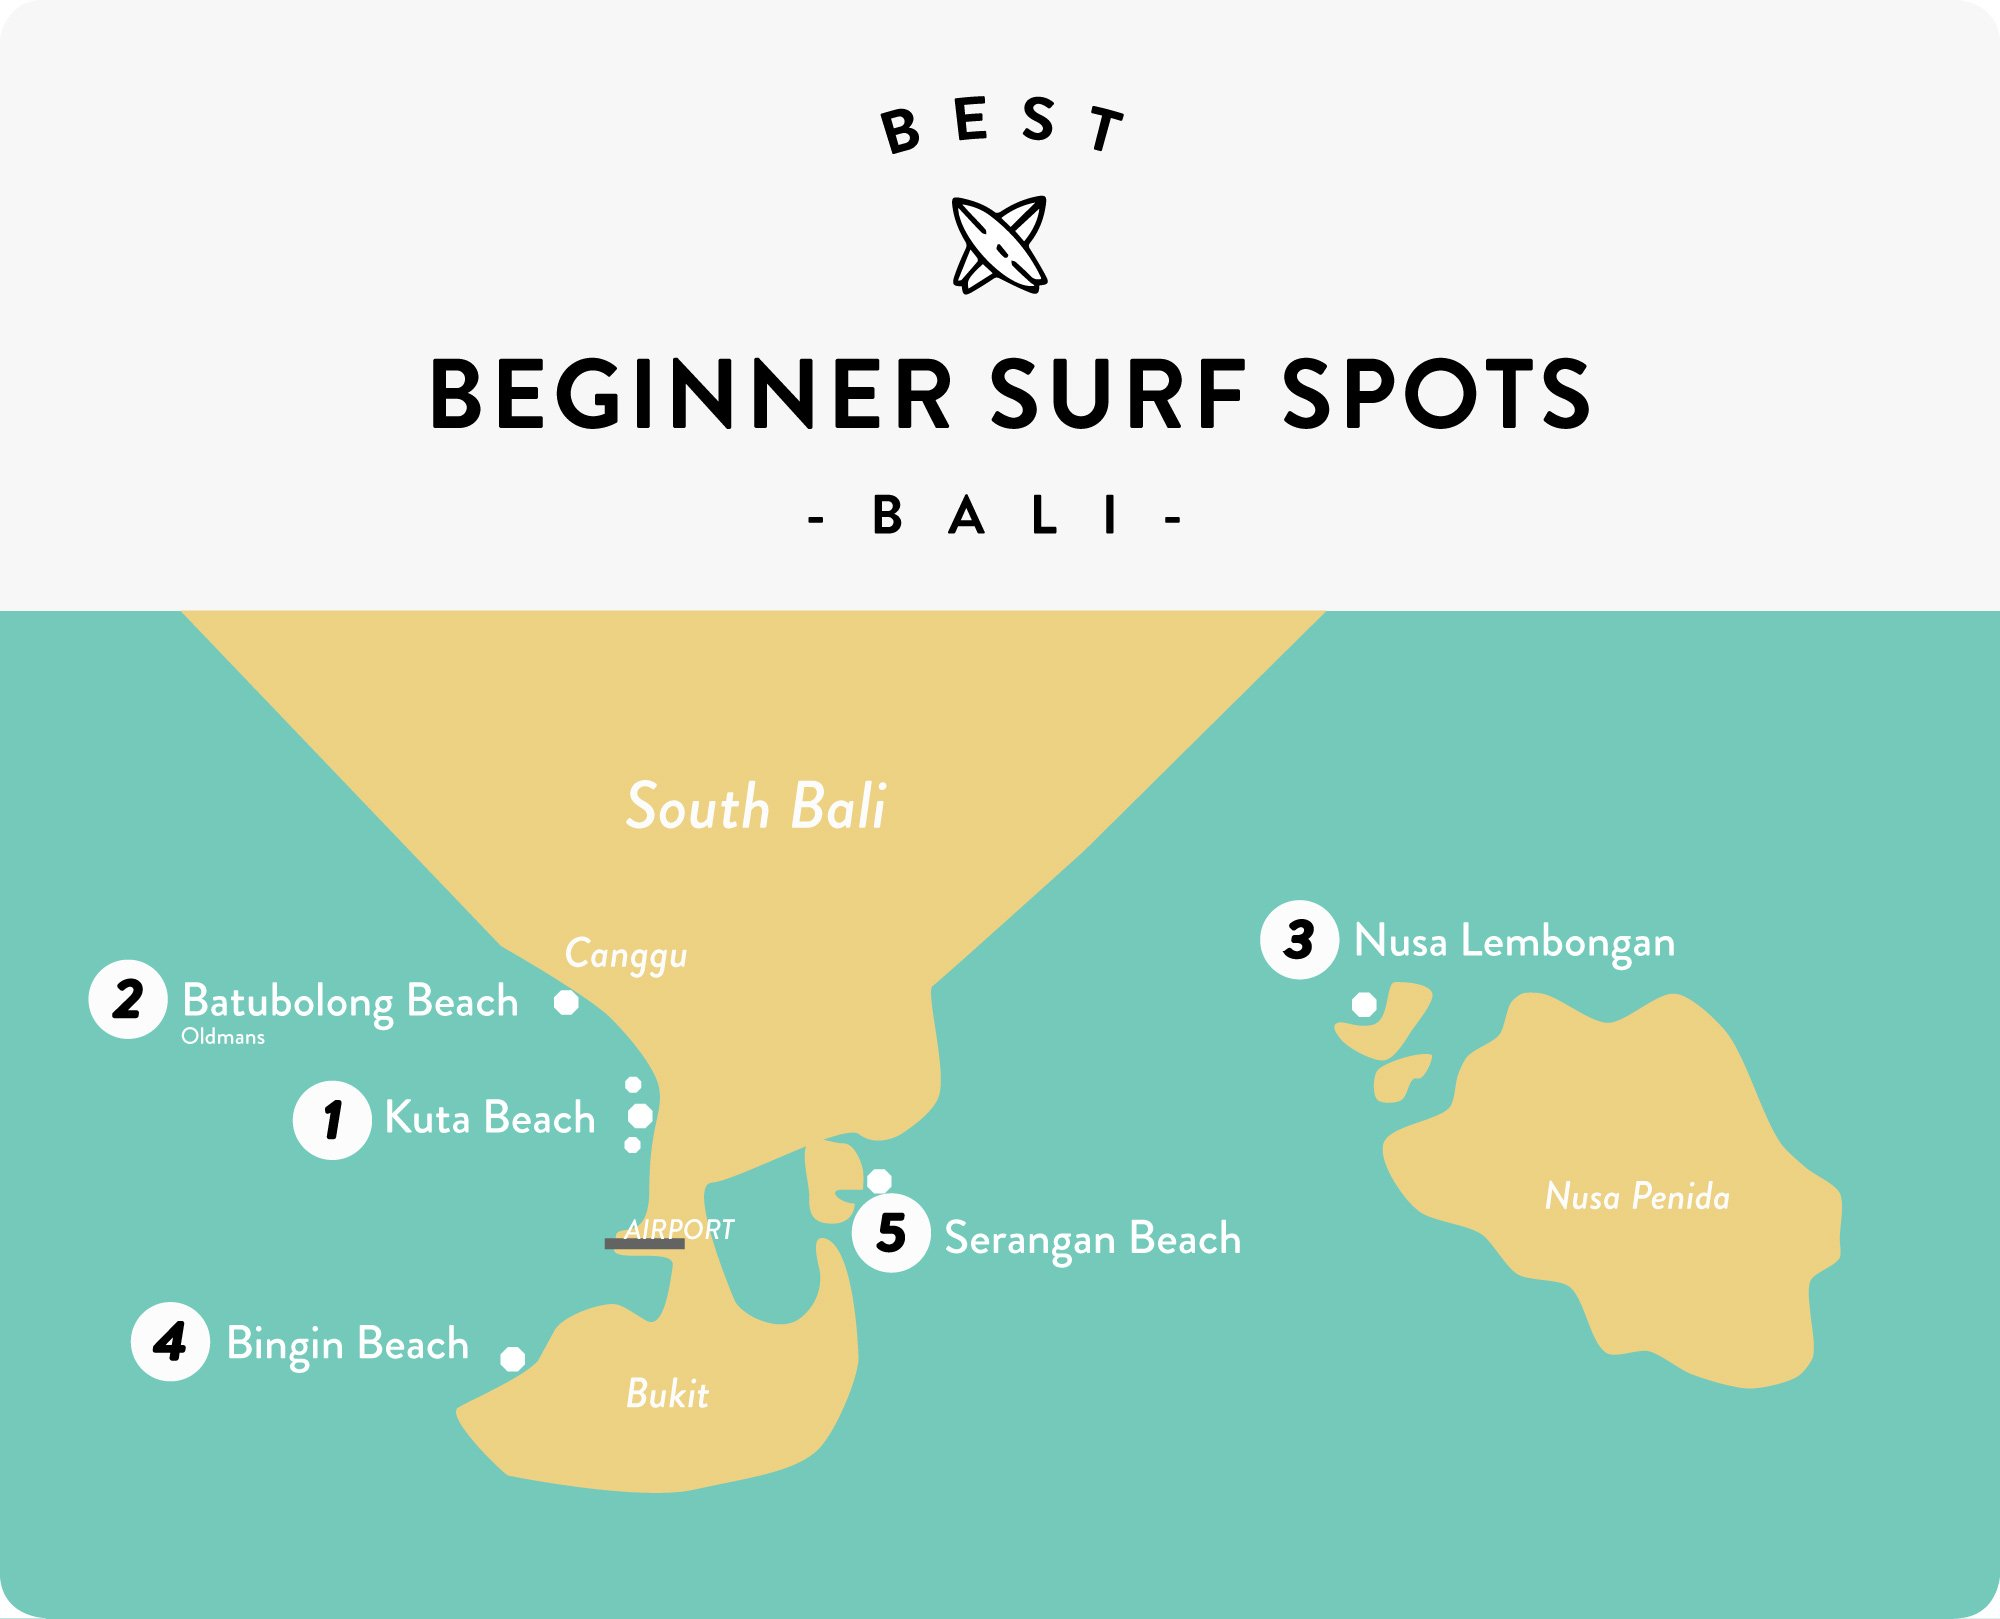 Best Surf Spots Bali for Beginner Surfers